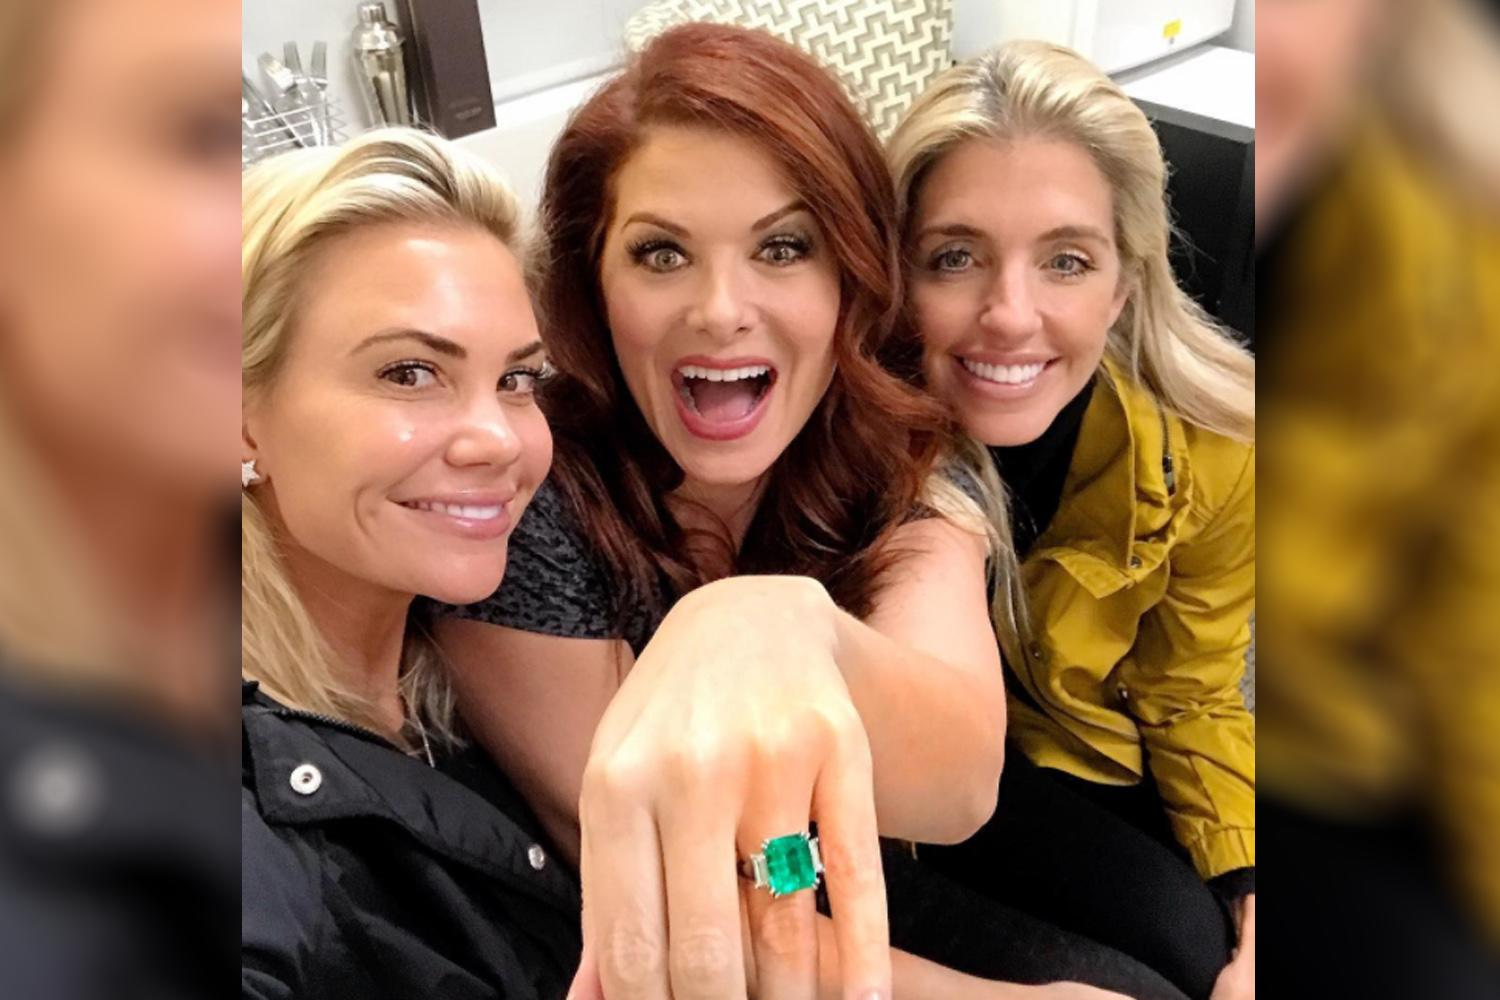 Debra Messing gave herself an engagement ring and you should, too